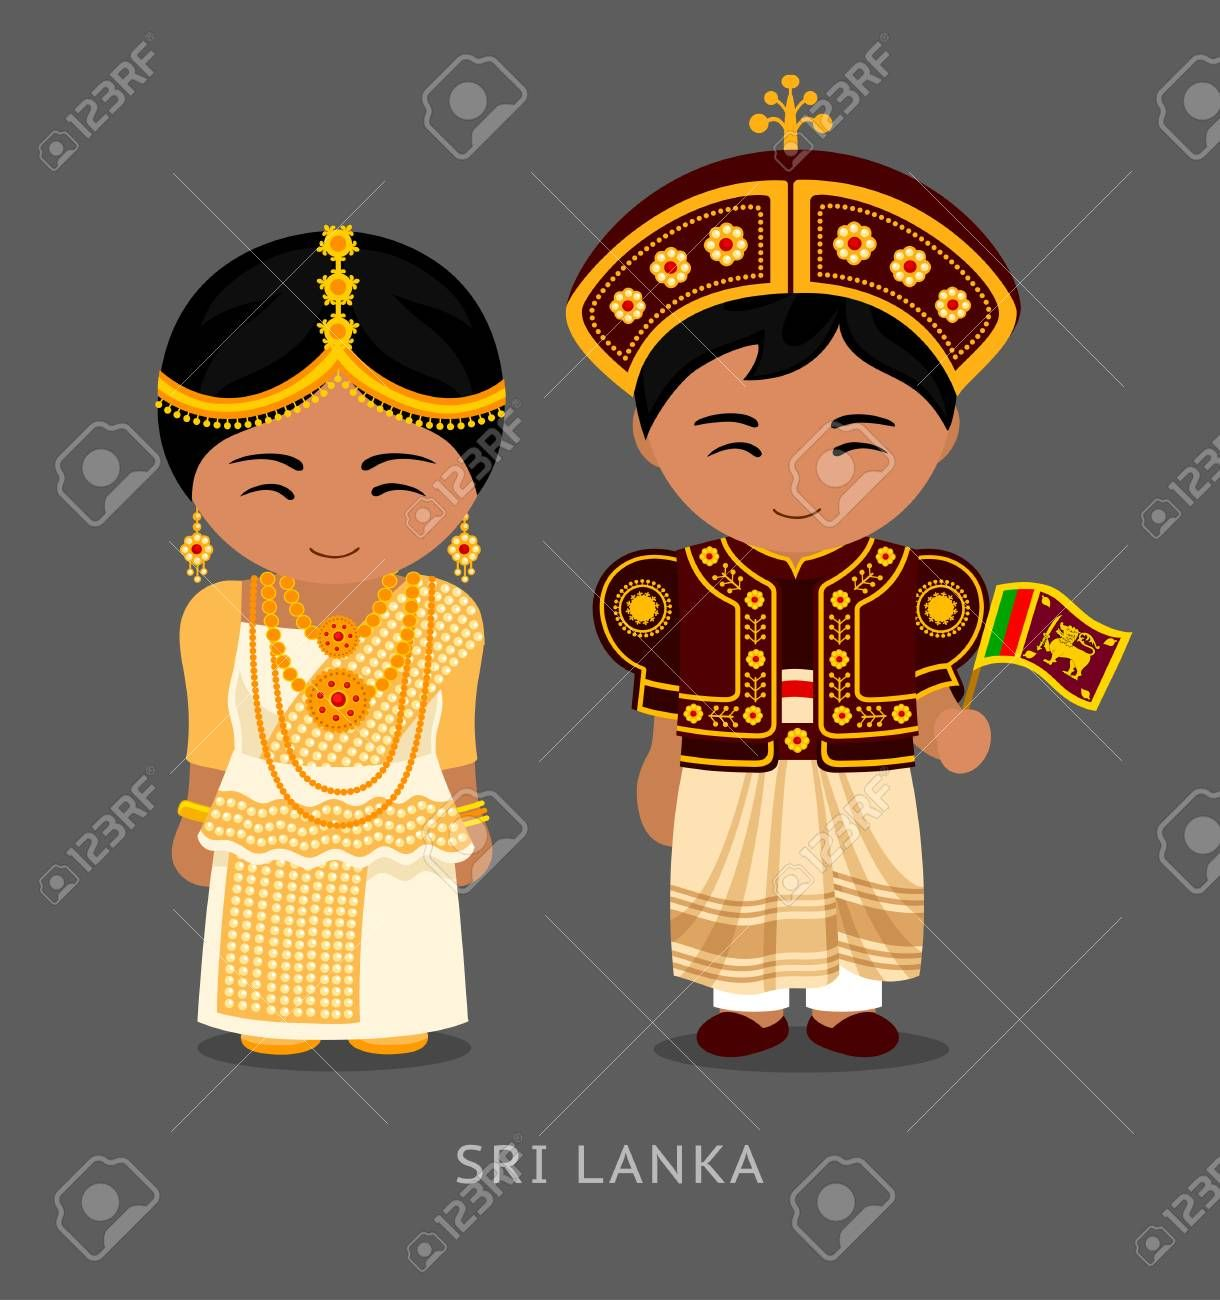 Sri Lankans in national dress with a flag. Man and woman